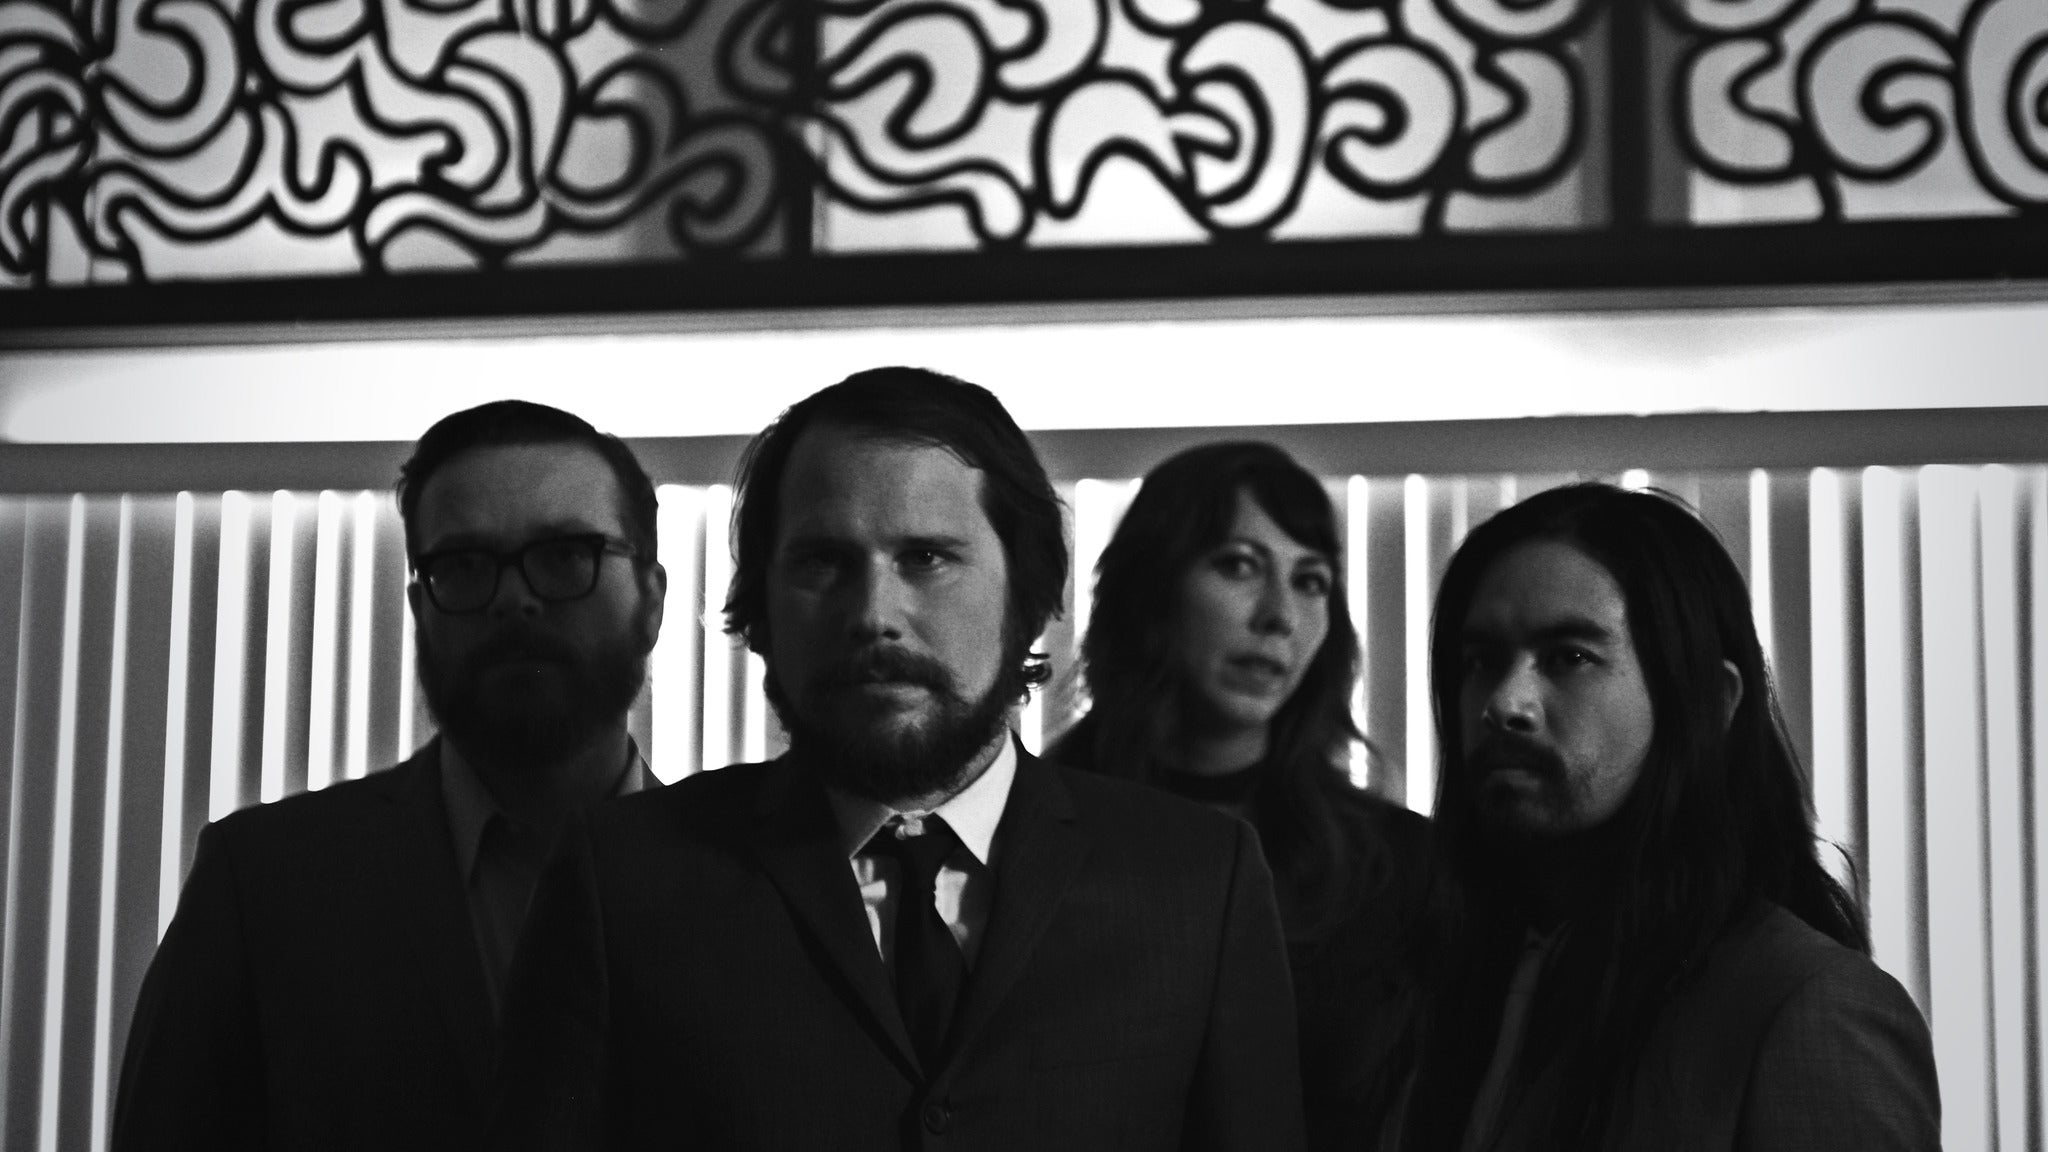 Silversun Pickups at College Street Music Hall